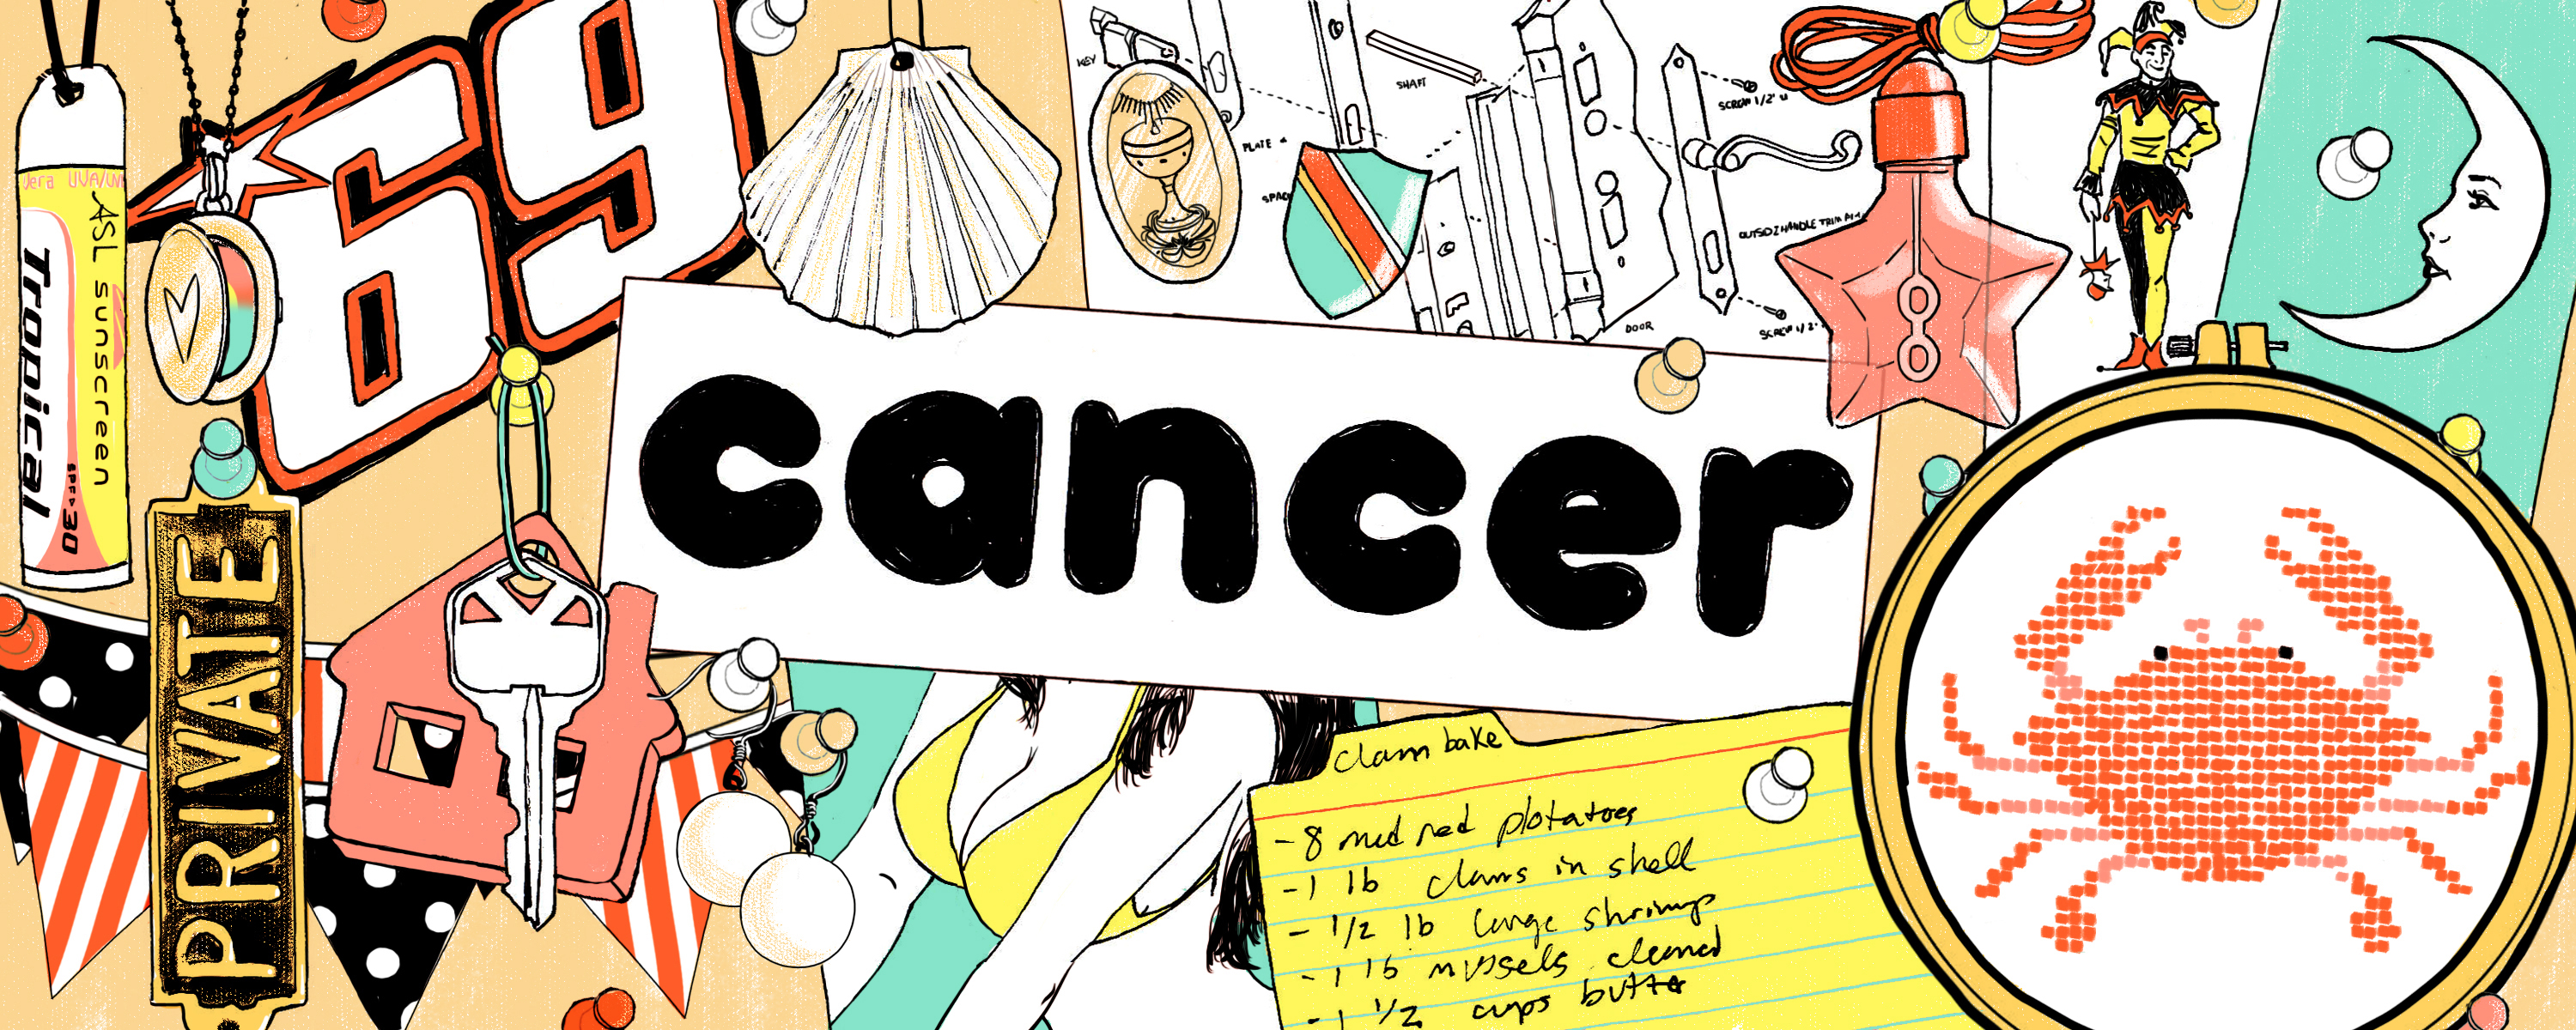 Monthly Horoscope: Cancer, May 2019 - VICE